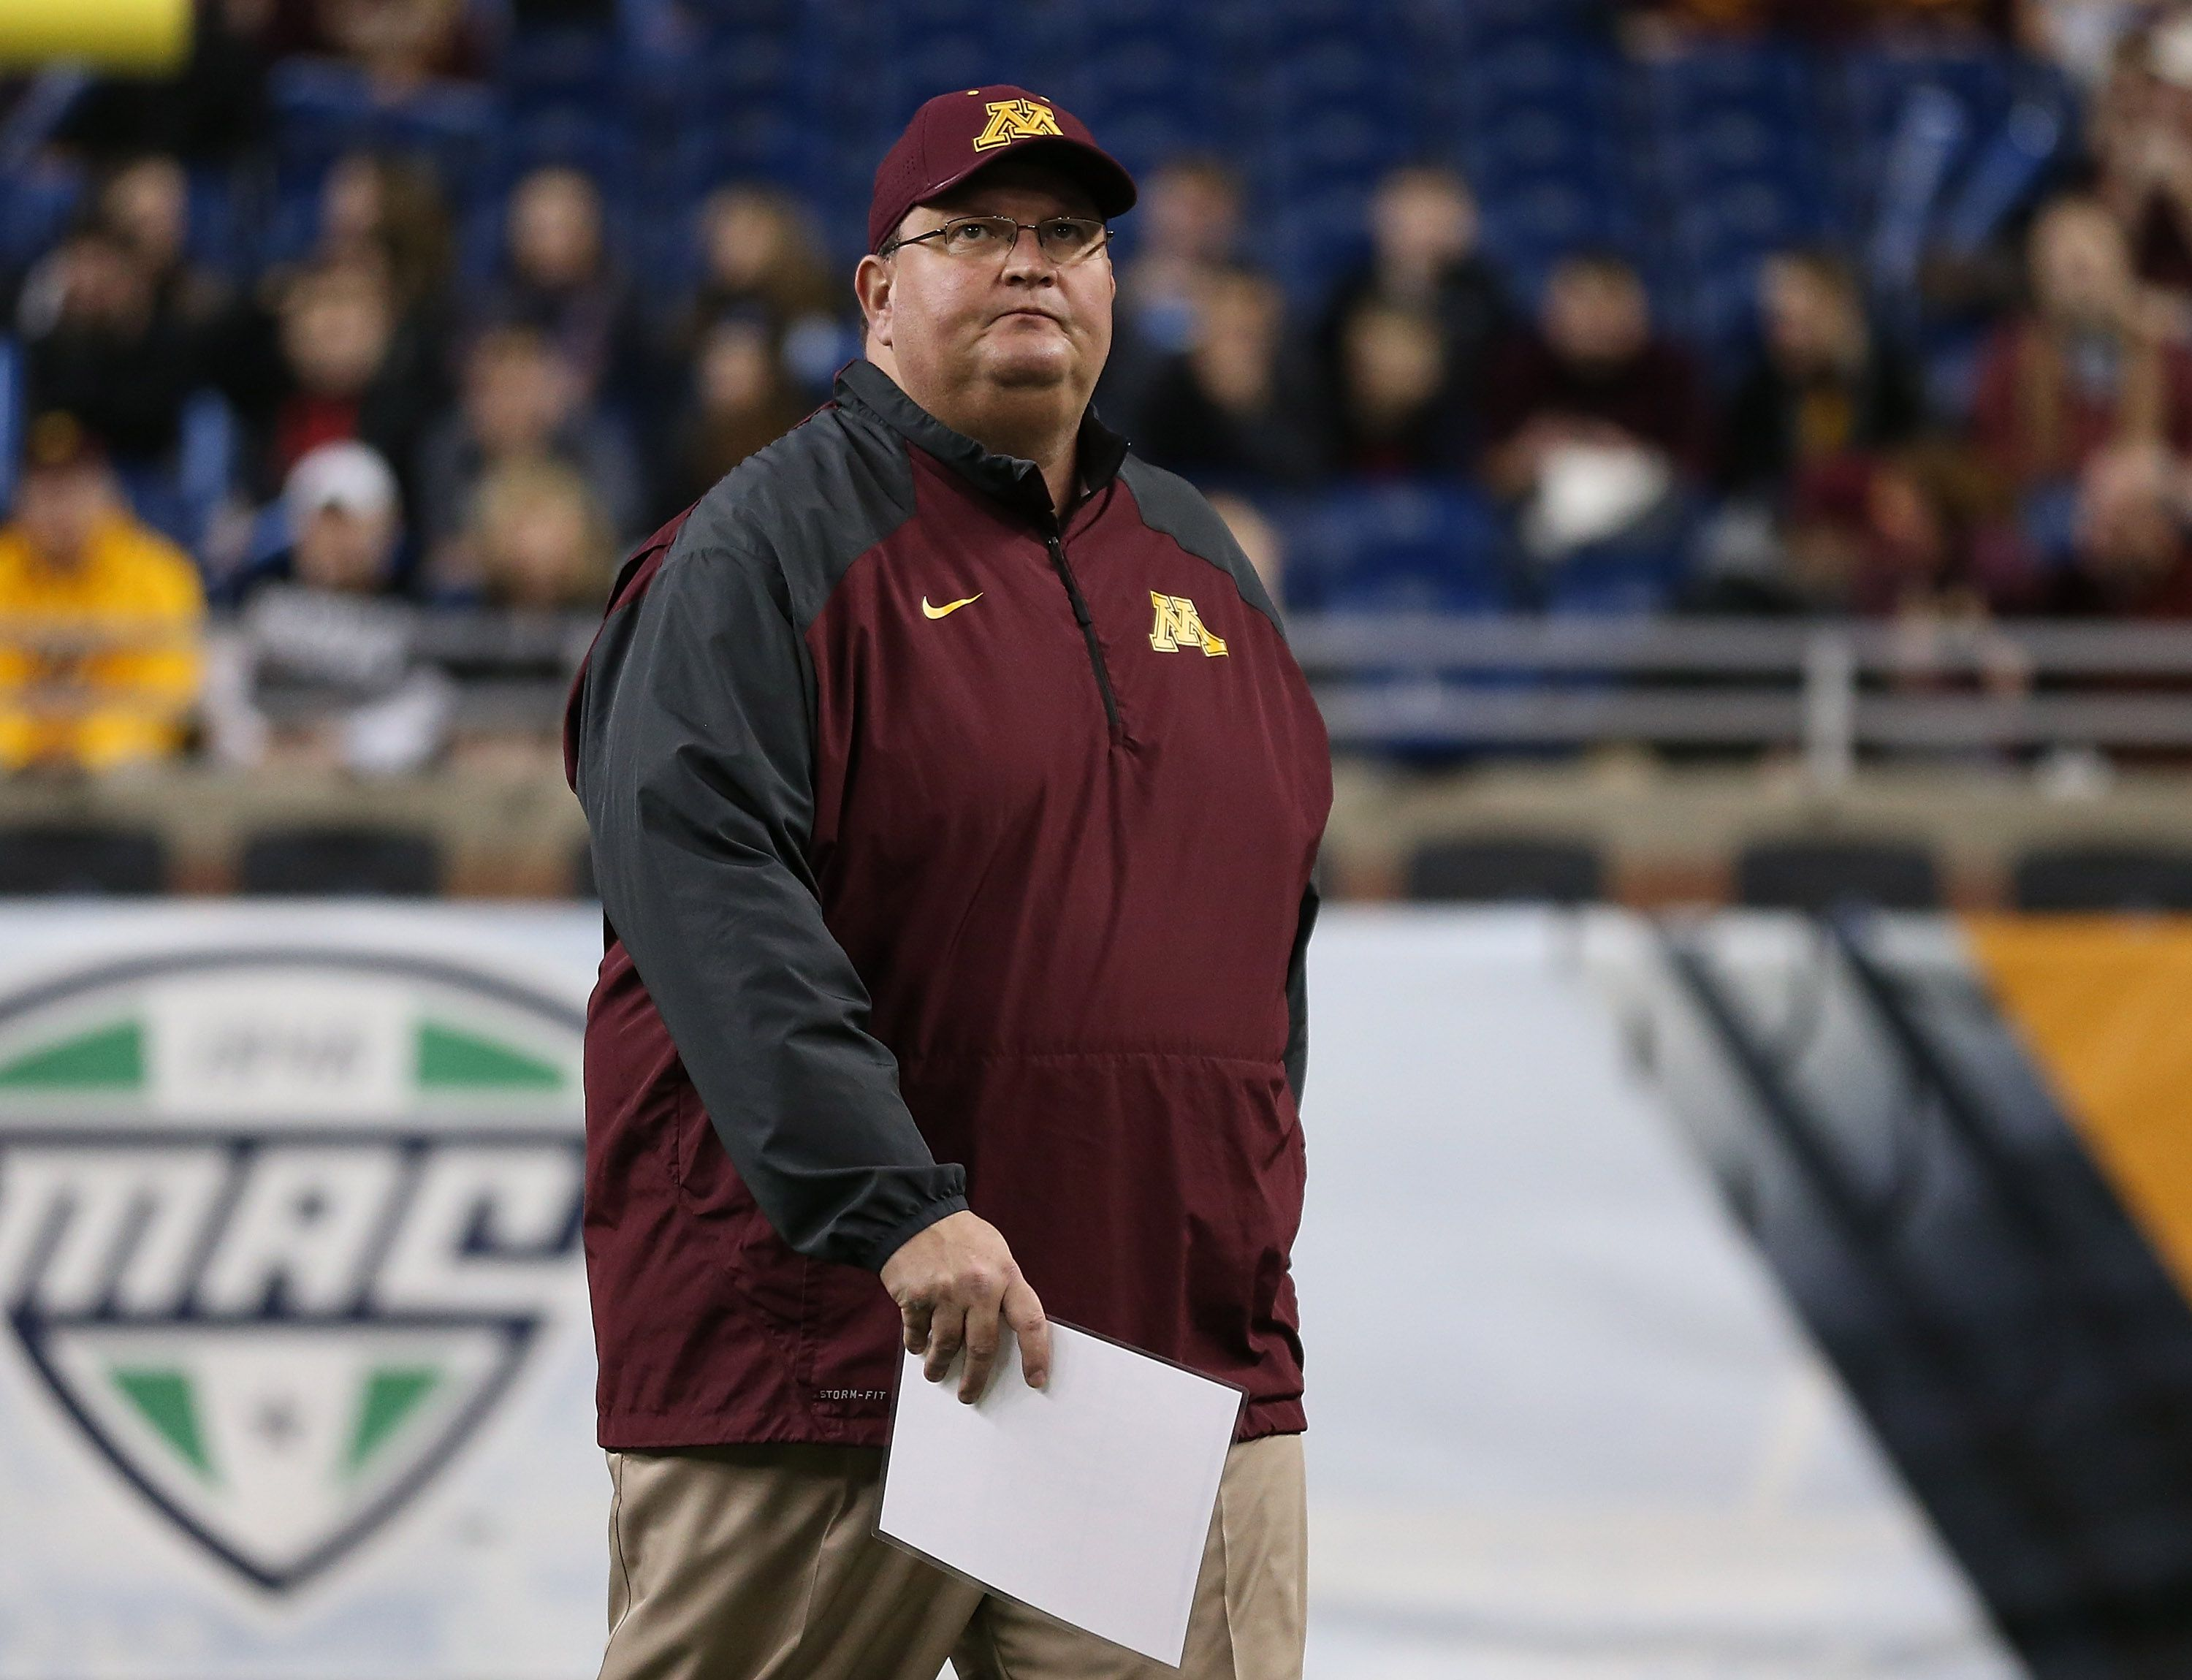 fire gophers coach tracy - HD1024×785